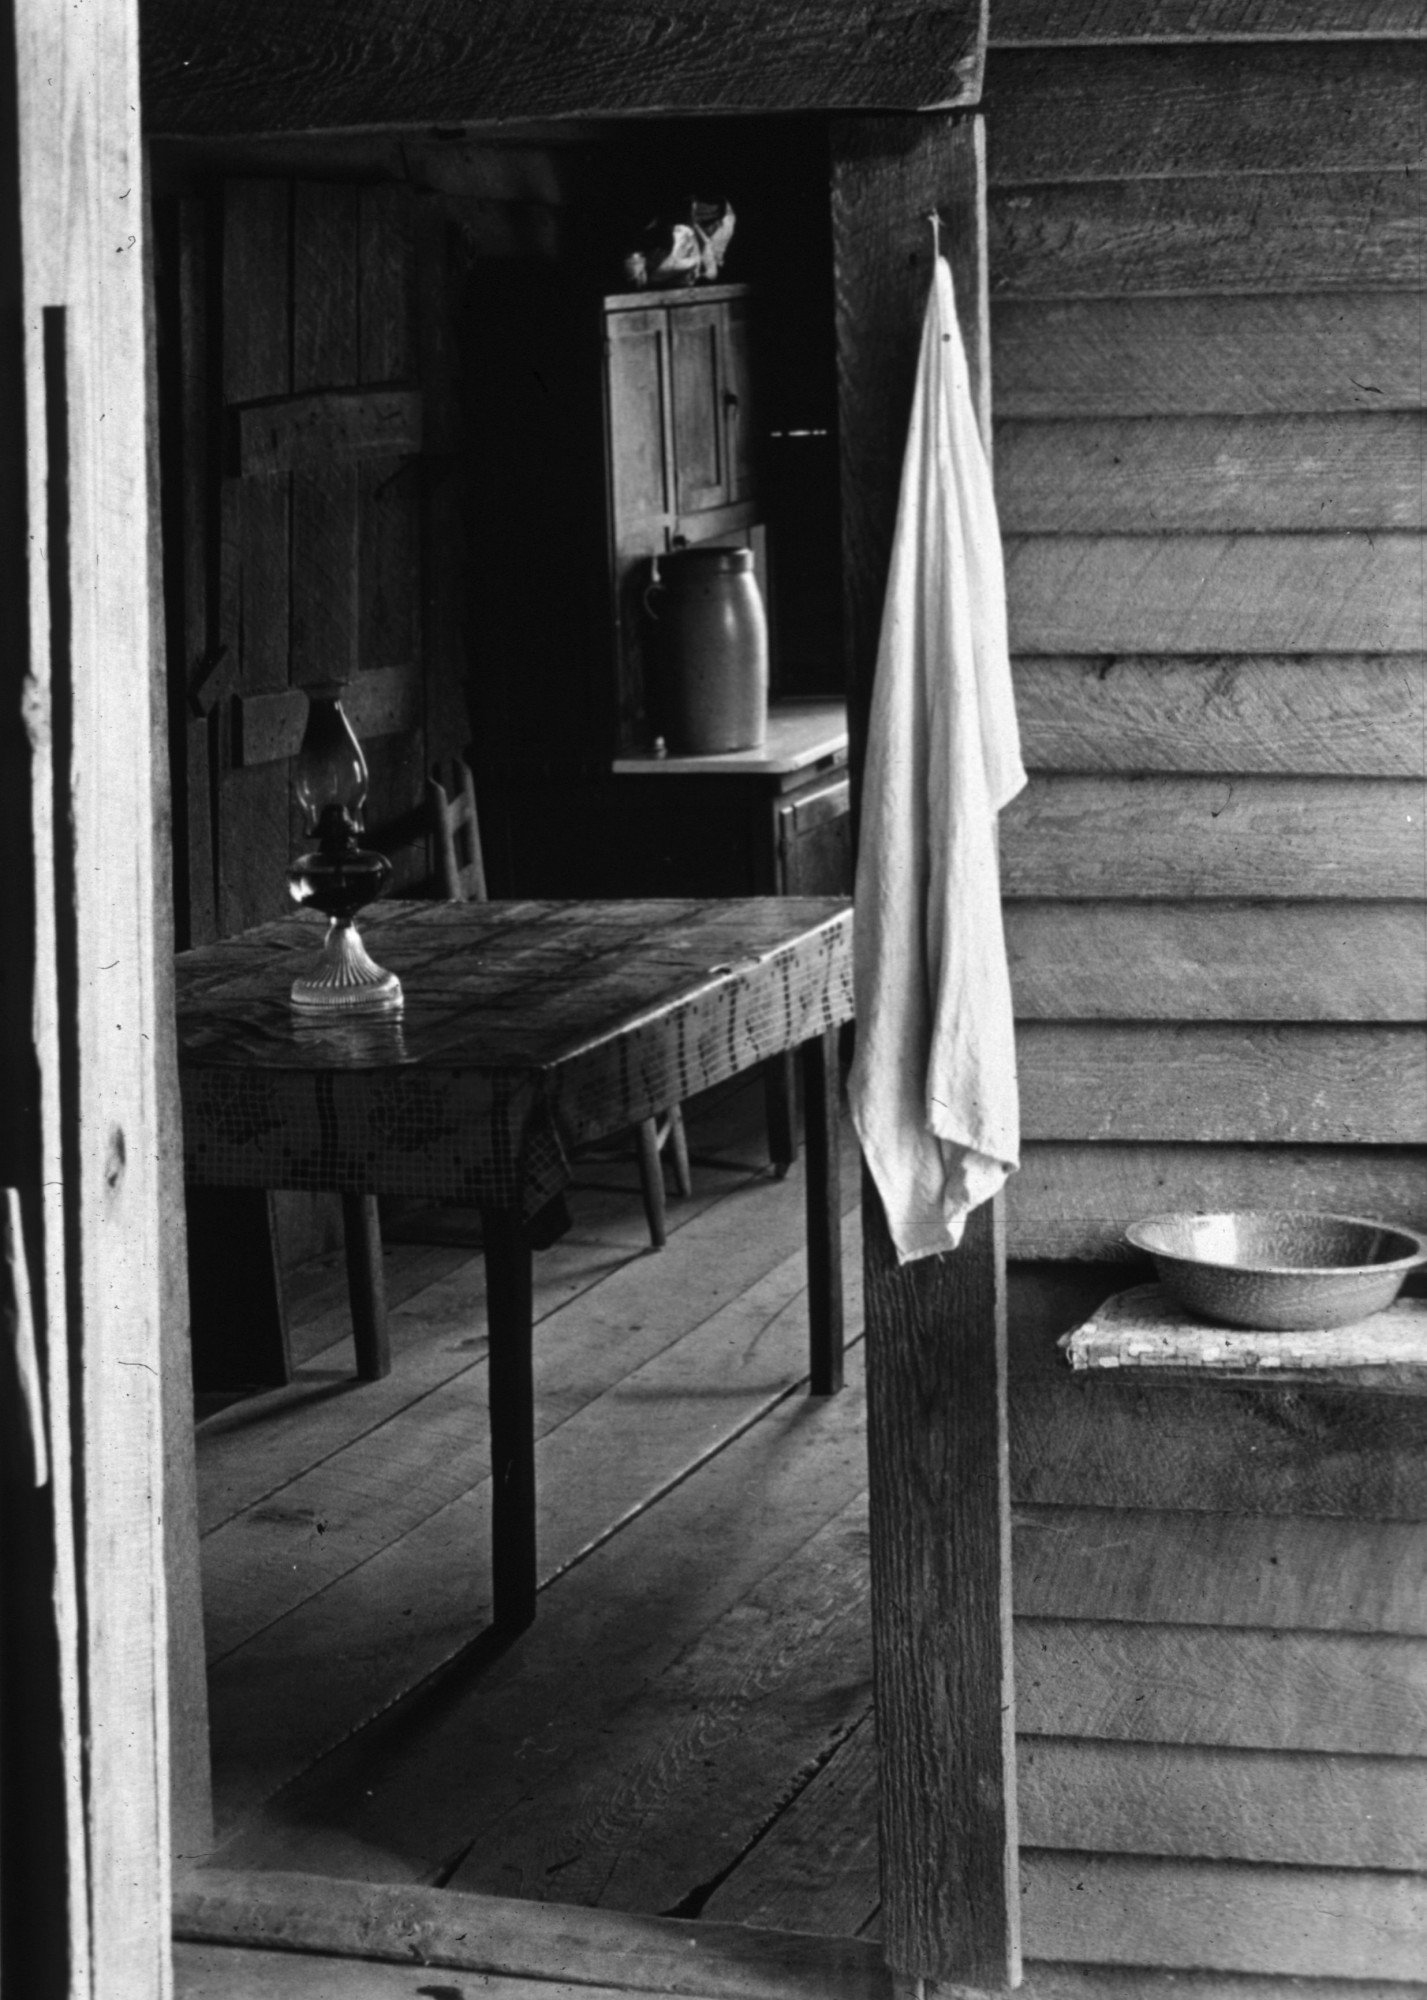 A sharecropper's cabin in Hale County, Alabama.   (Photo by Walker Evans/Getty Images)